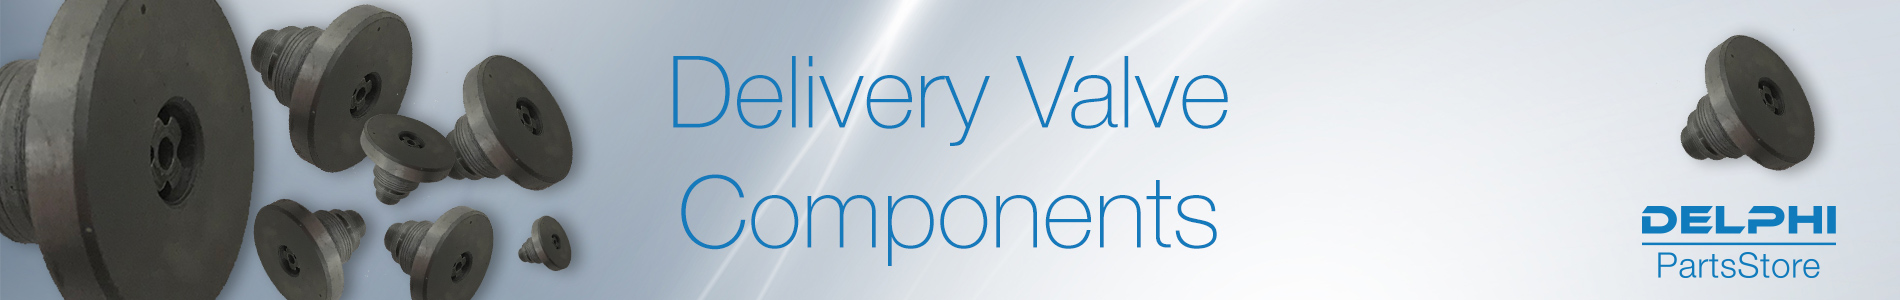 Delivery Valves & Components